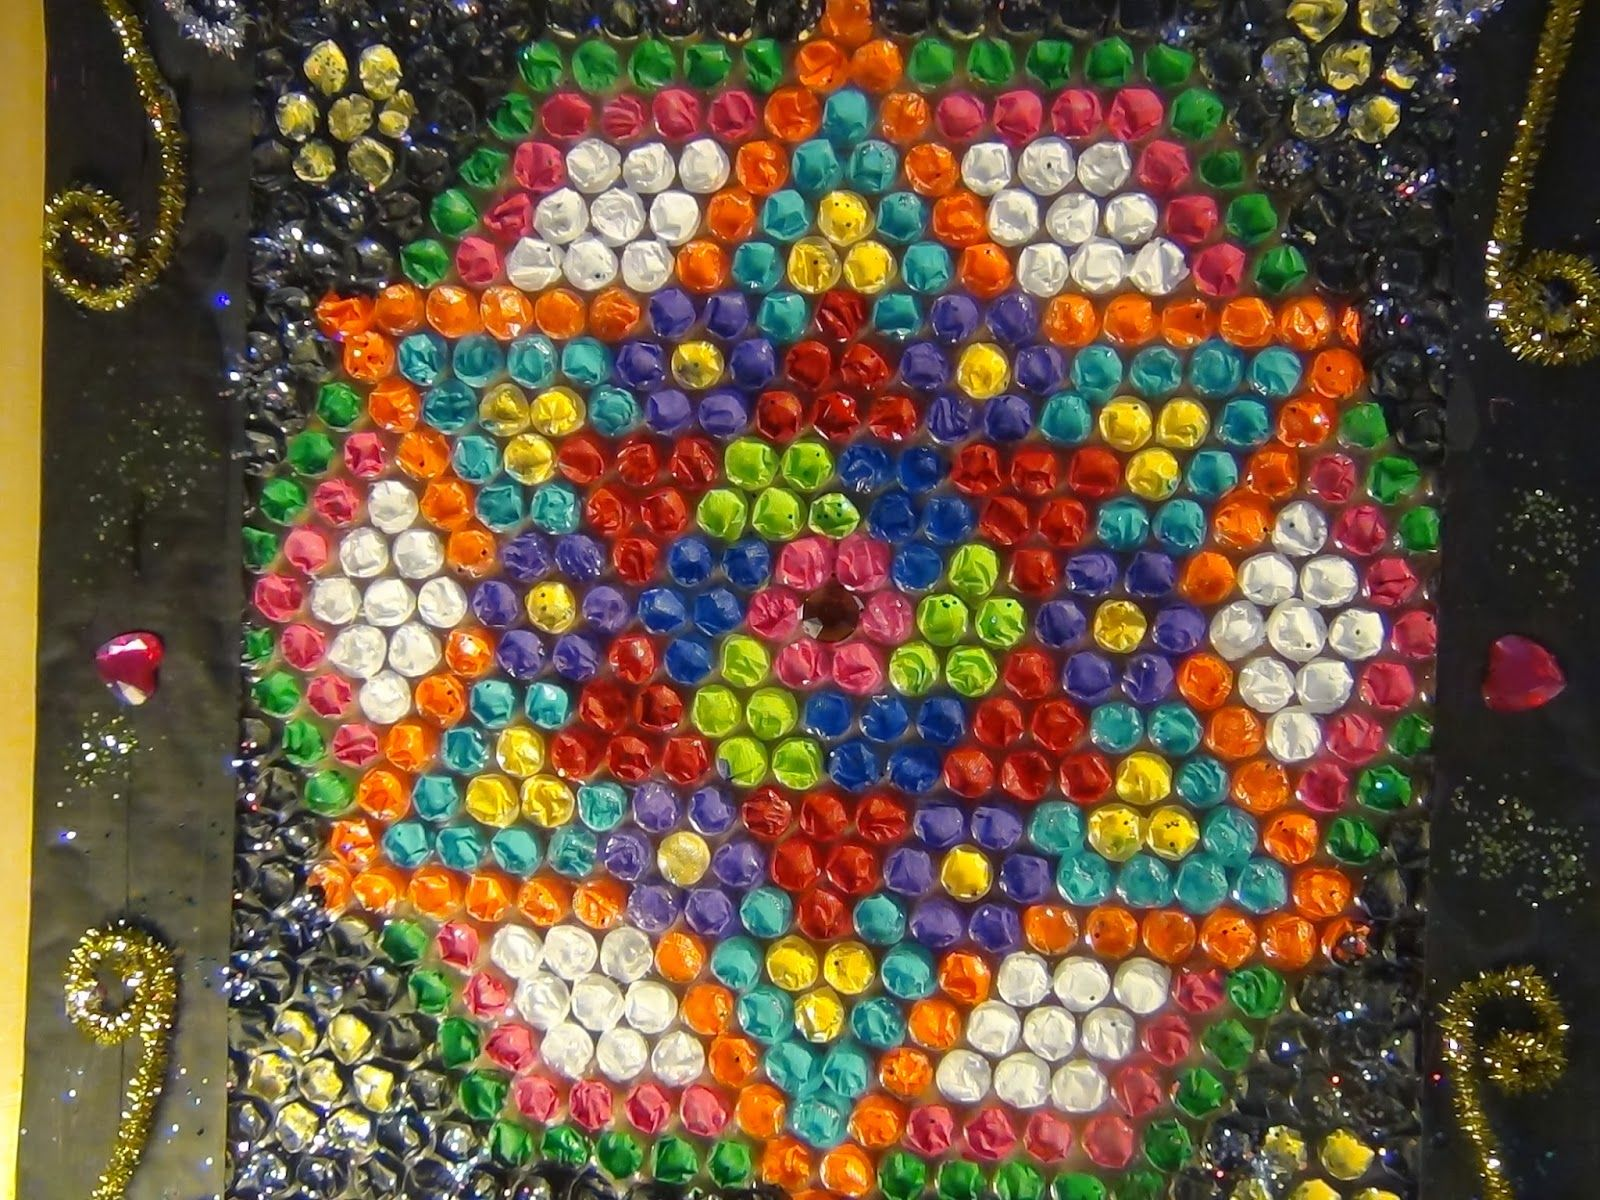 Creative diy crafts buble wrap rangoli creativity for Handicrafts from waste